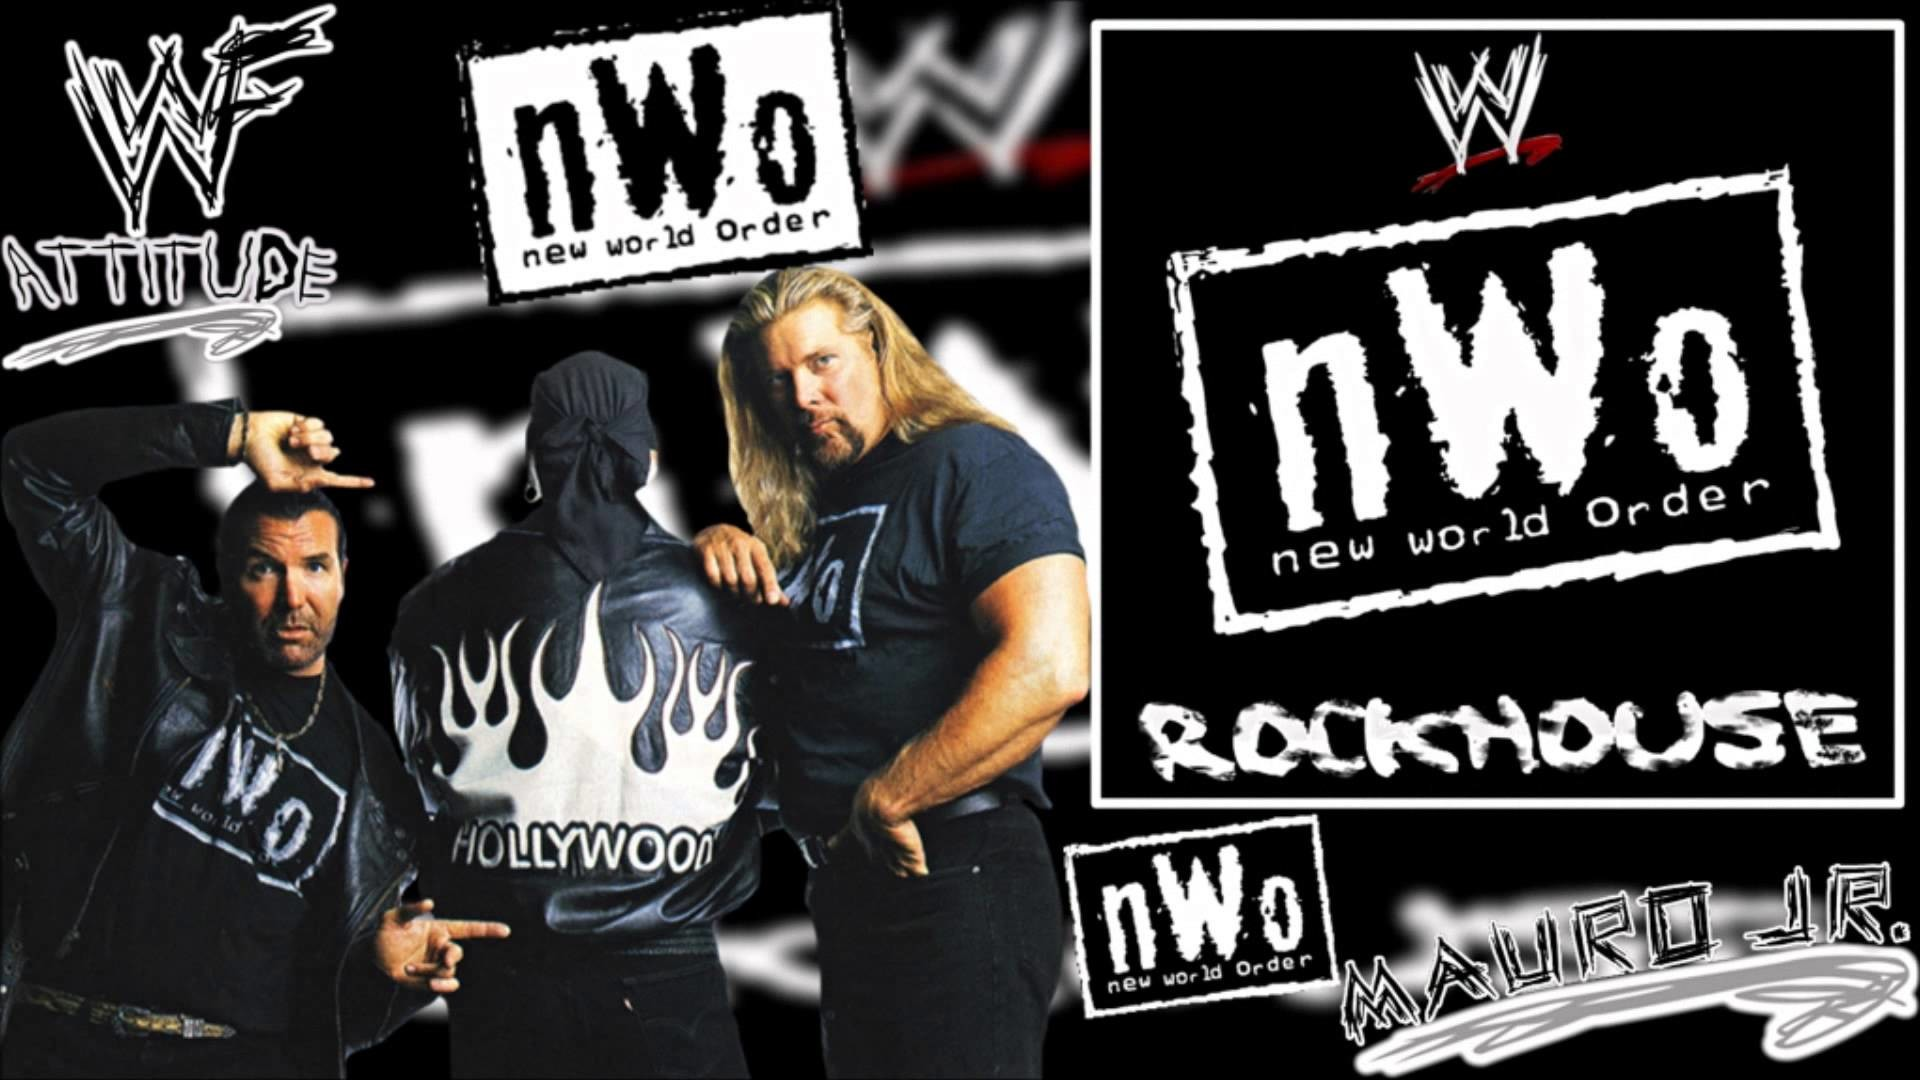 WWE Nwo Wallpaper (77+ images)